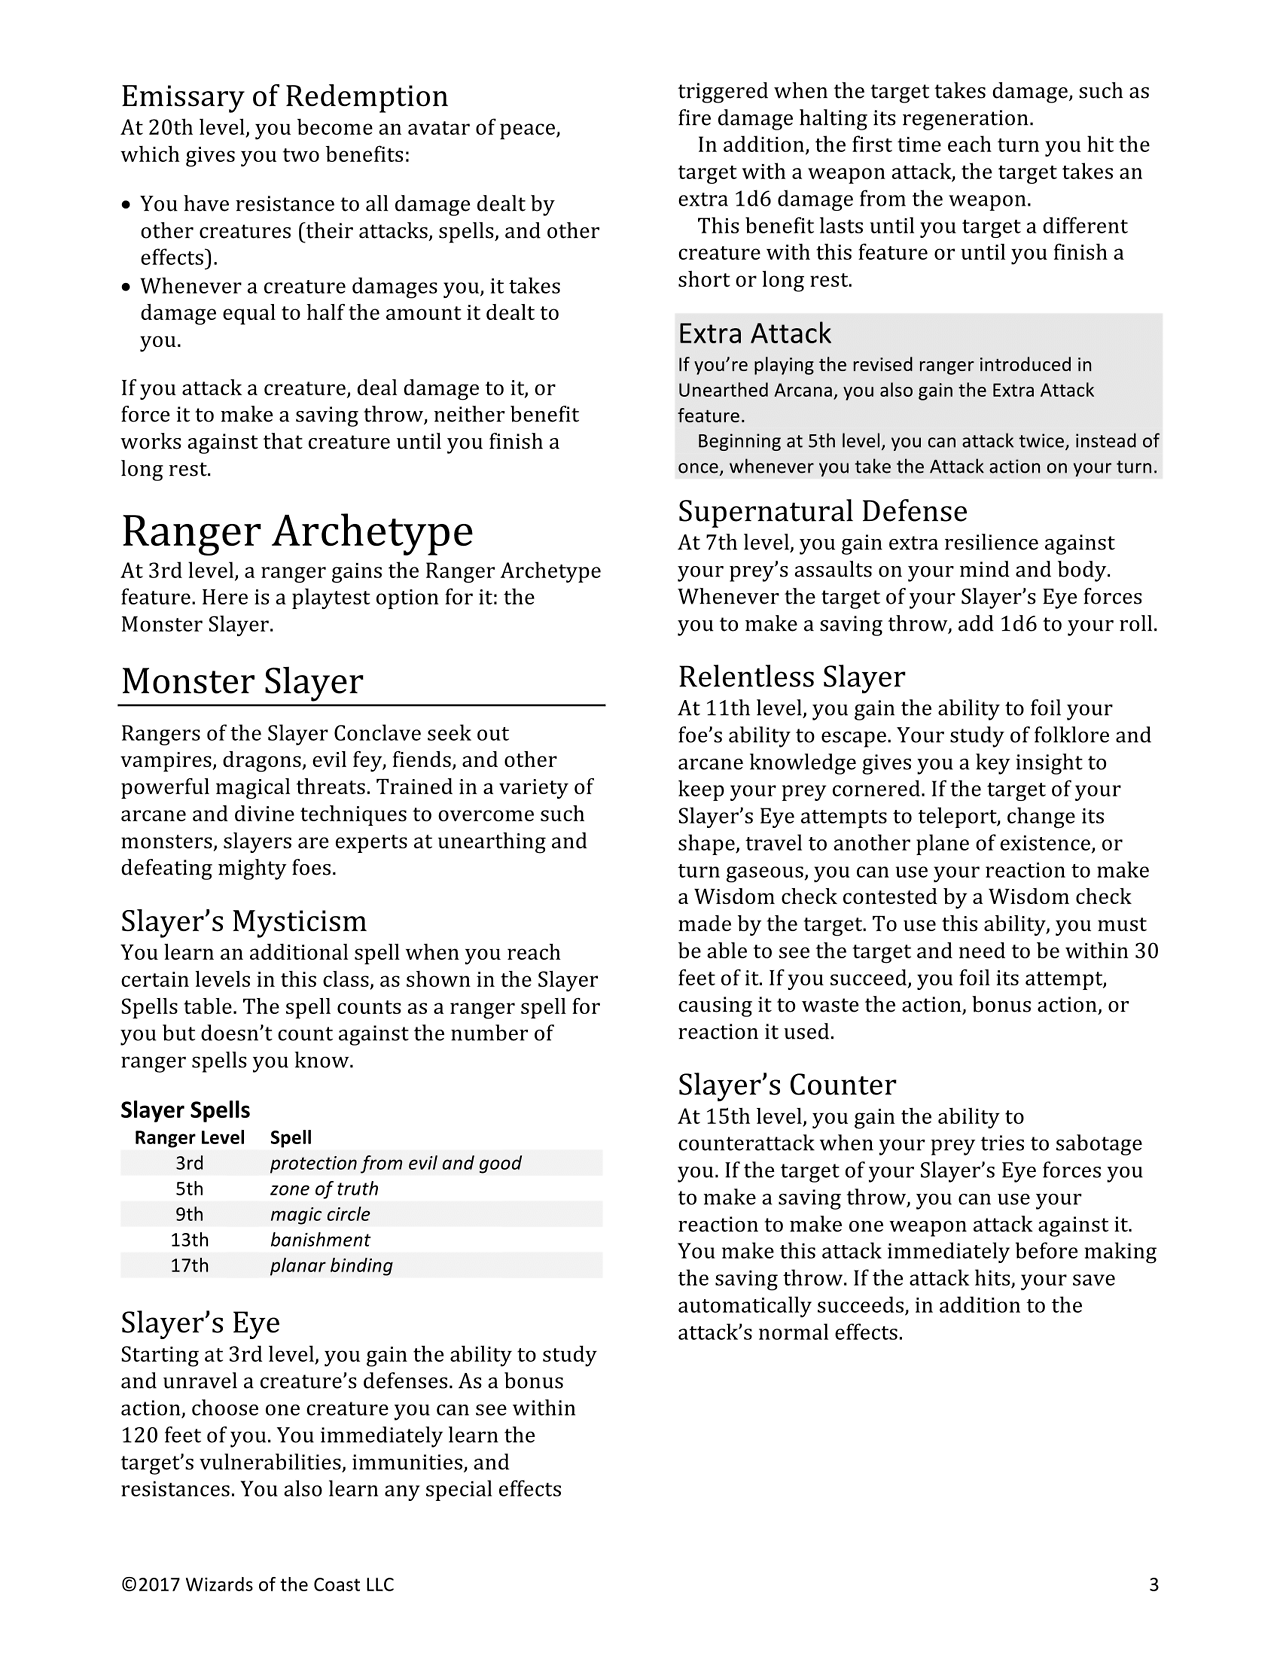 Unearthed Arcana: A trio of Subclasses: Drunken Master Monk